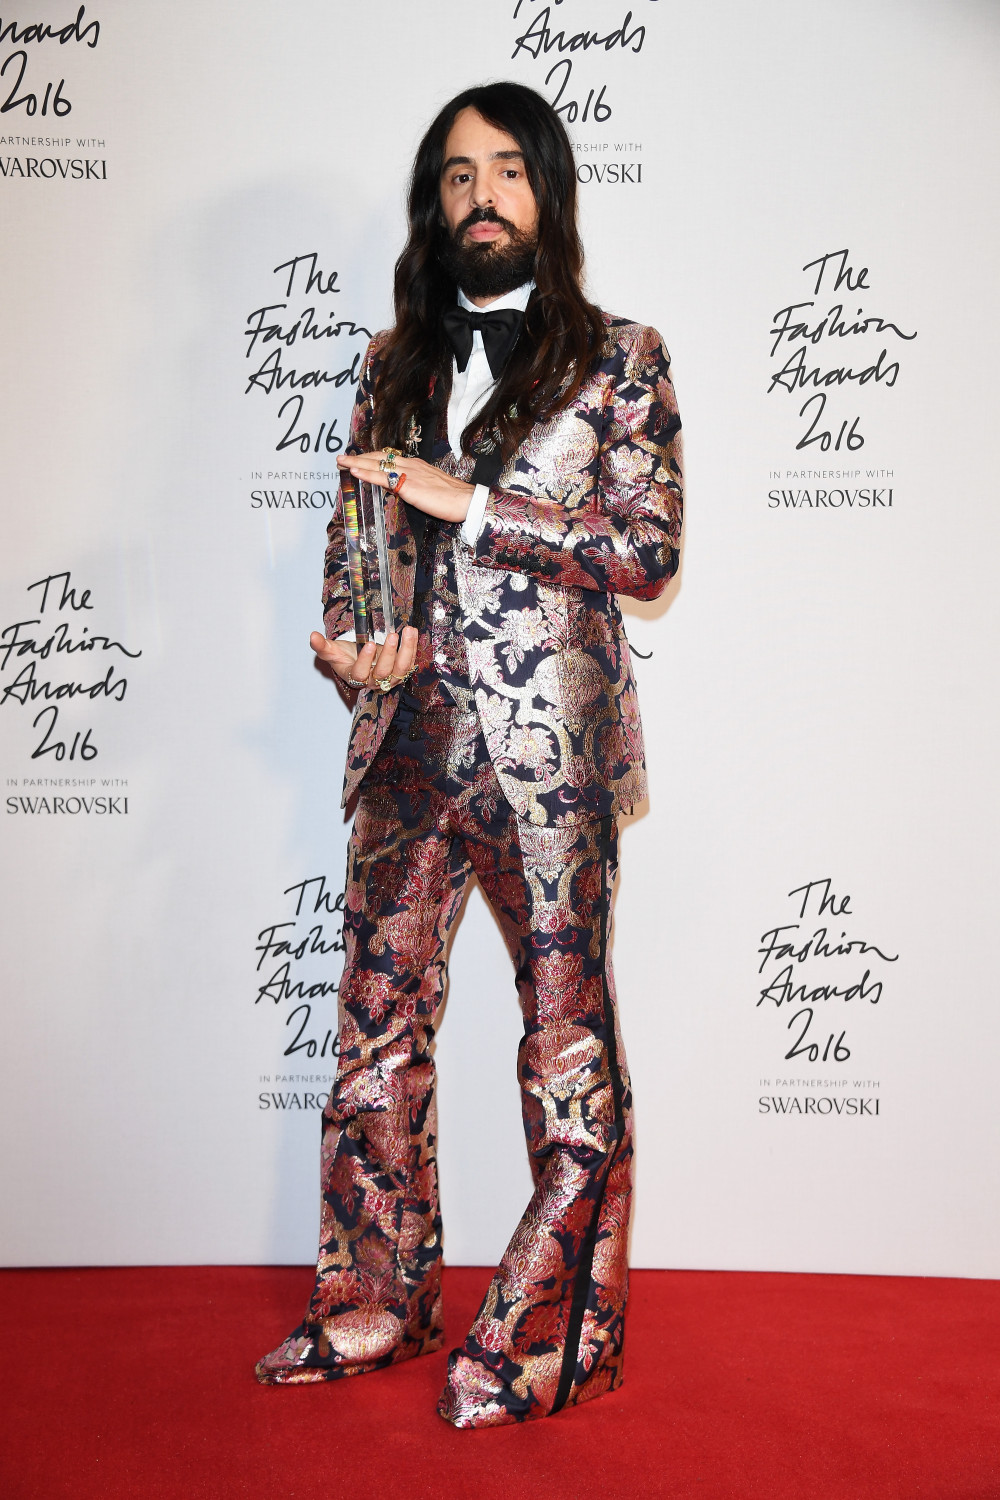 LONDON, ENGLAND - DECEMBER 05: Gucci Creative Director Alessandro Michele in the Winners Room with his award for best International Accessories Designer at the British Fashion Awards 2016 on December 5, 2016 in London, England. (Photo by Venturelli/Getty Images for GUCCI)